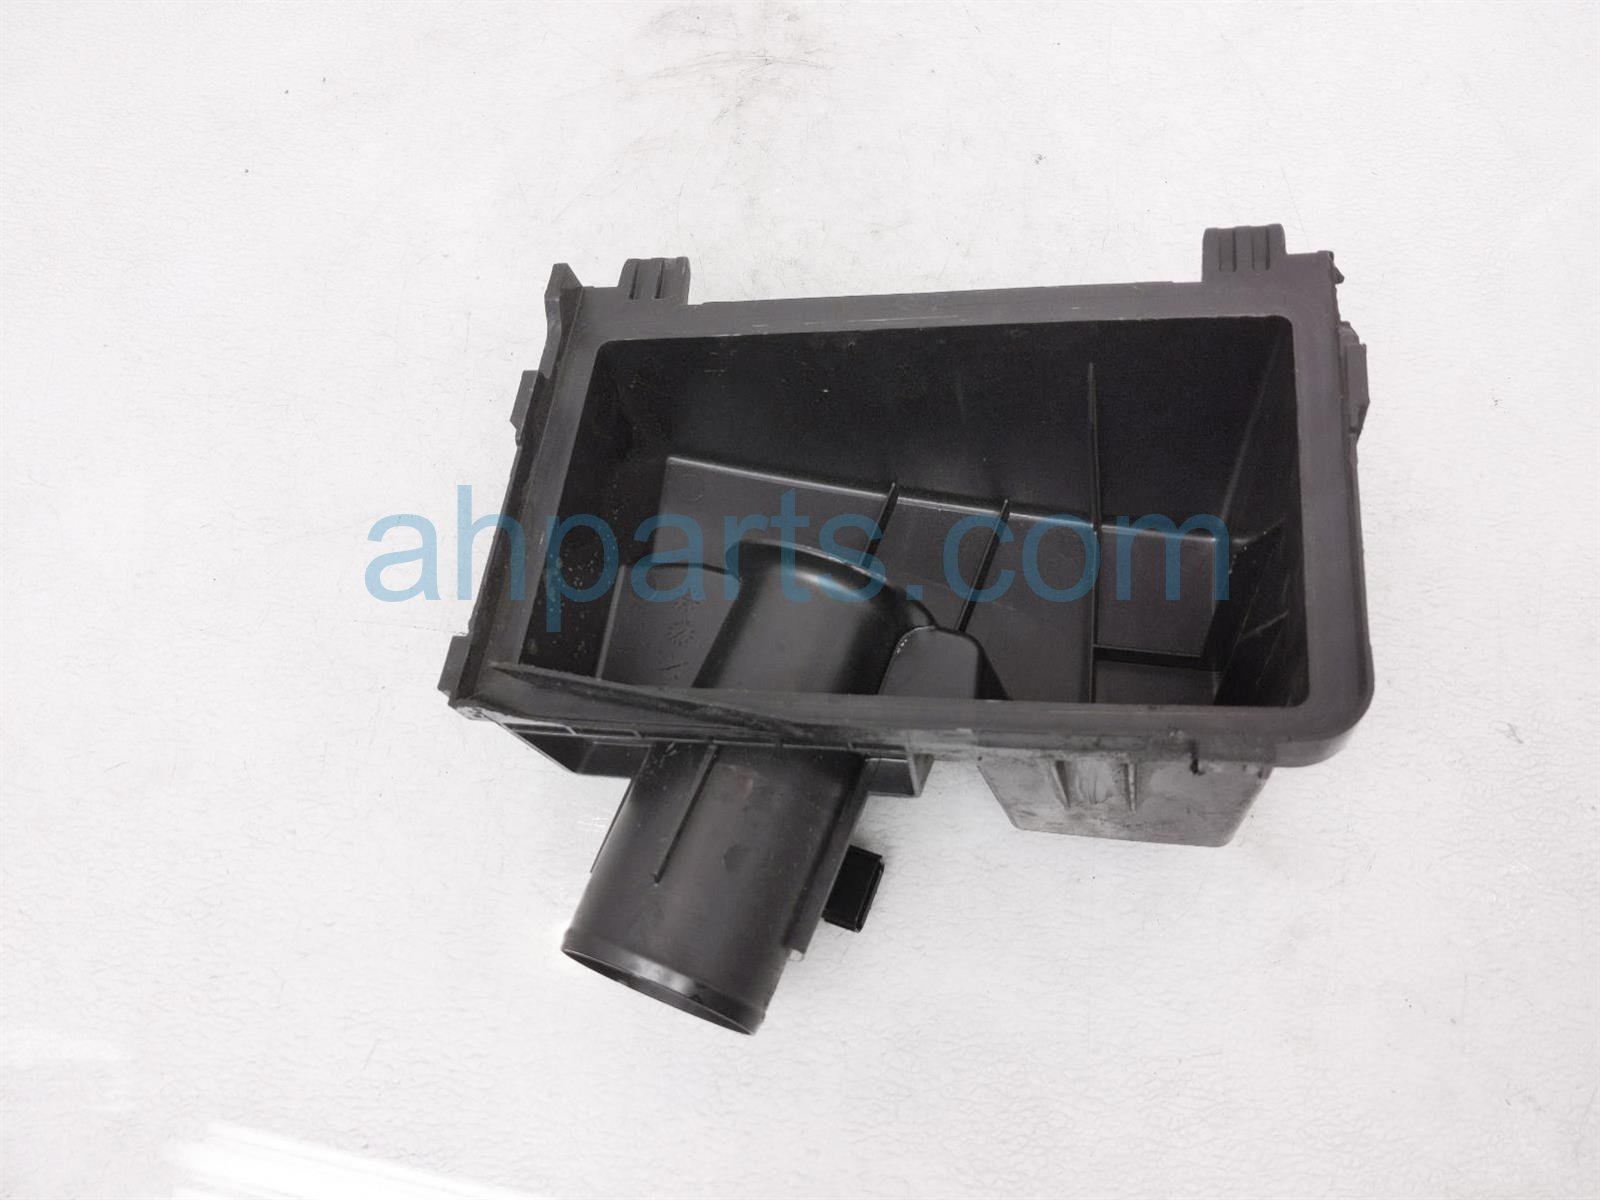 2018 Honda Clarity Air Cleaner Intake Box Top Cover 17201 5WJ A01 Replacement